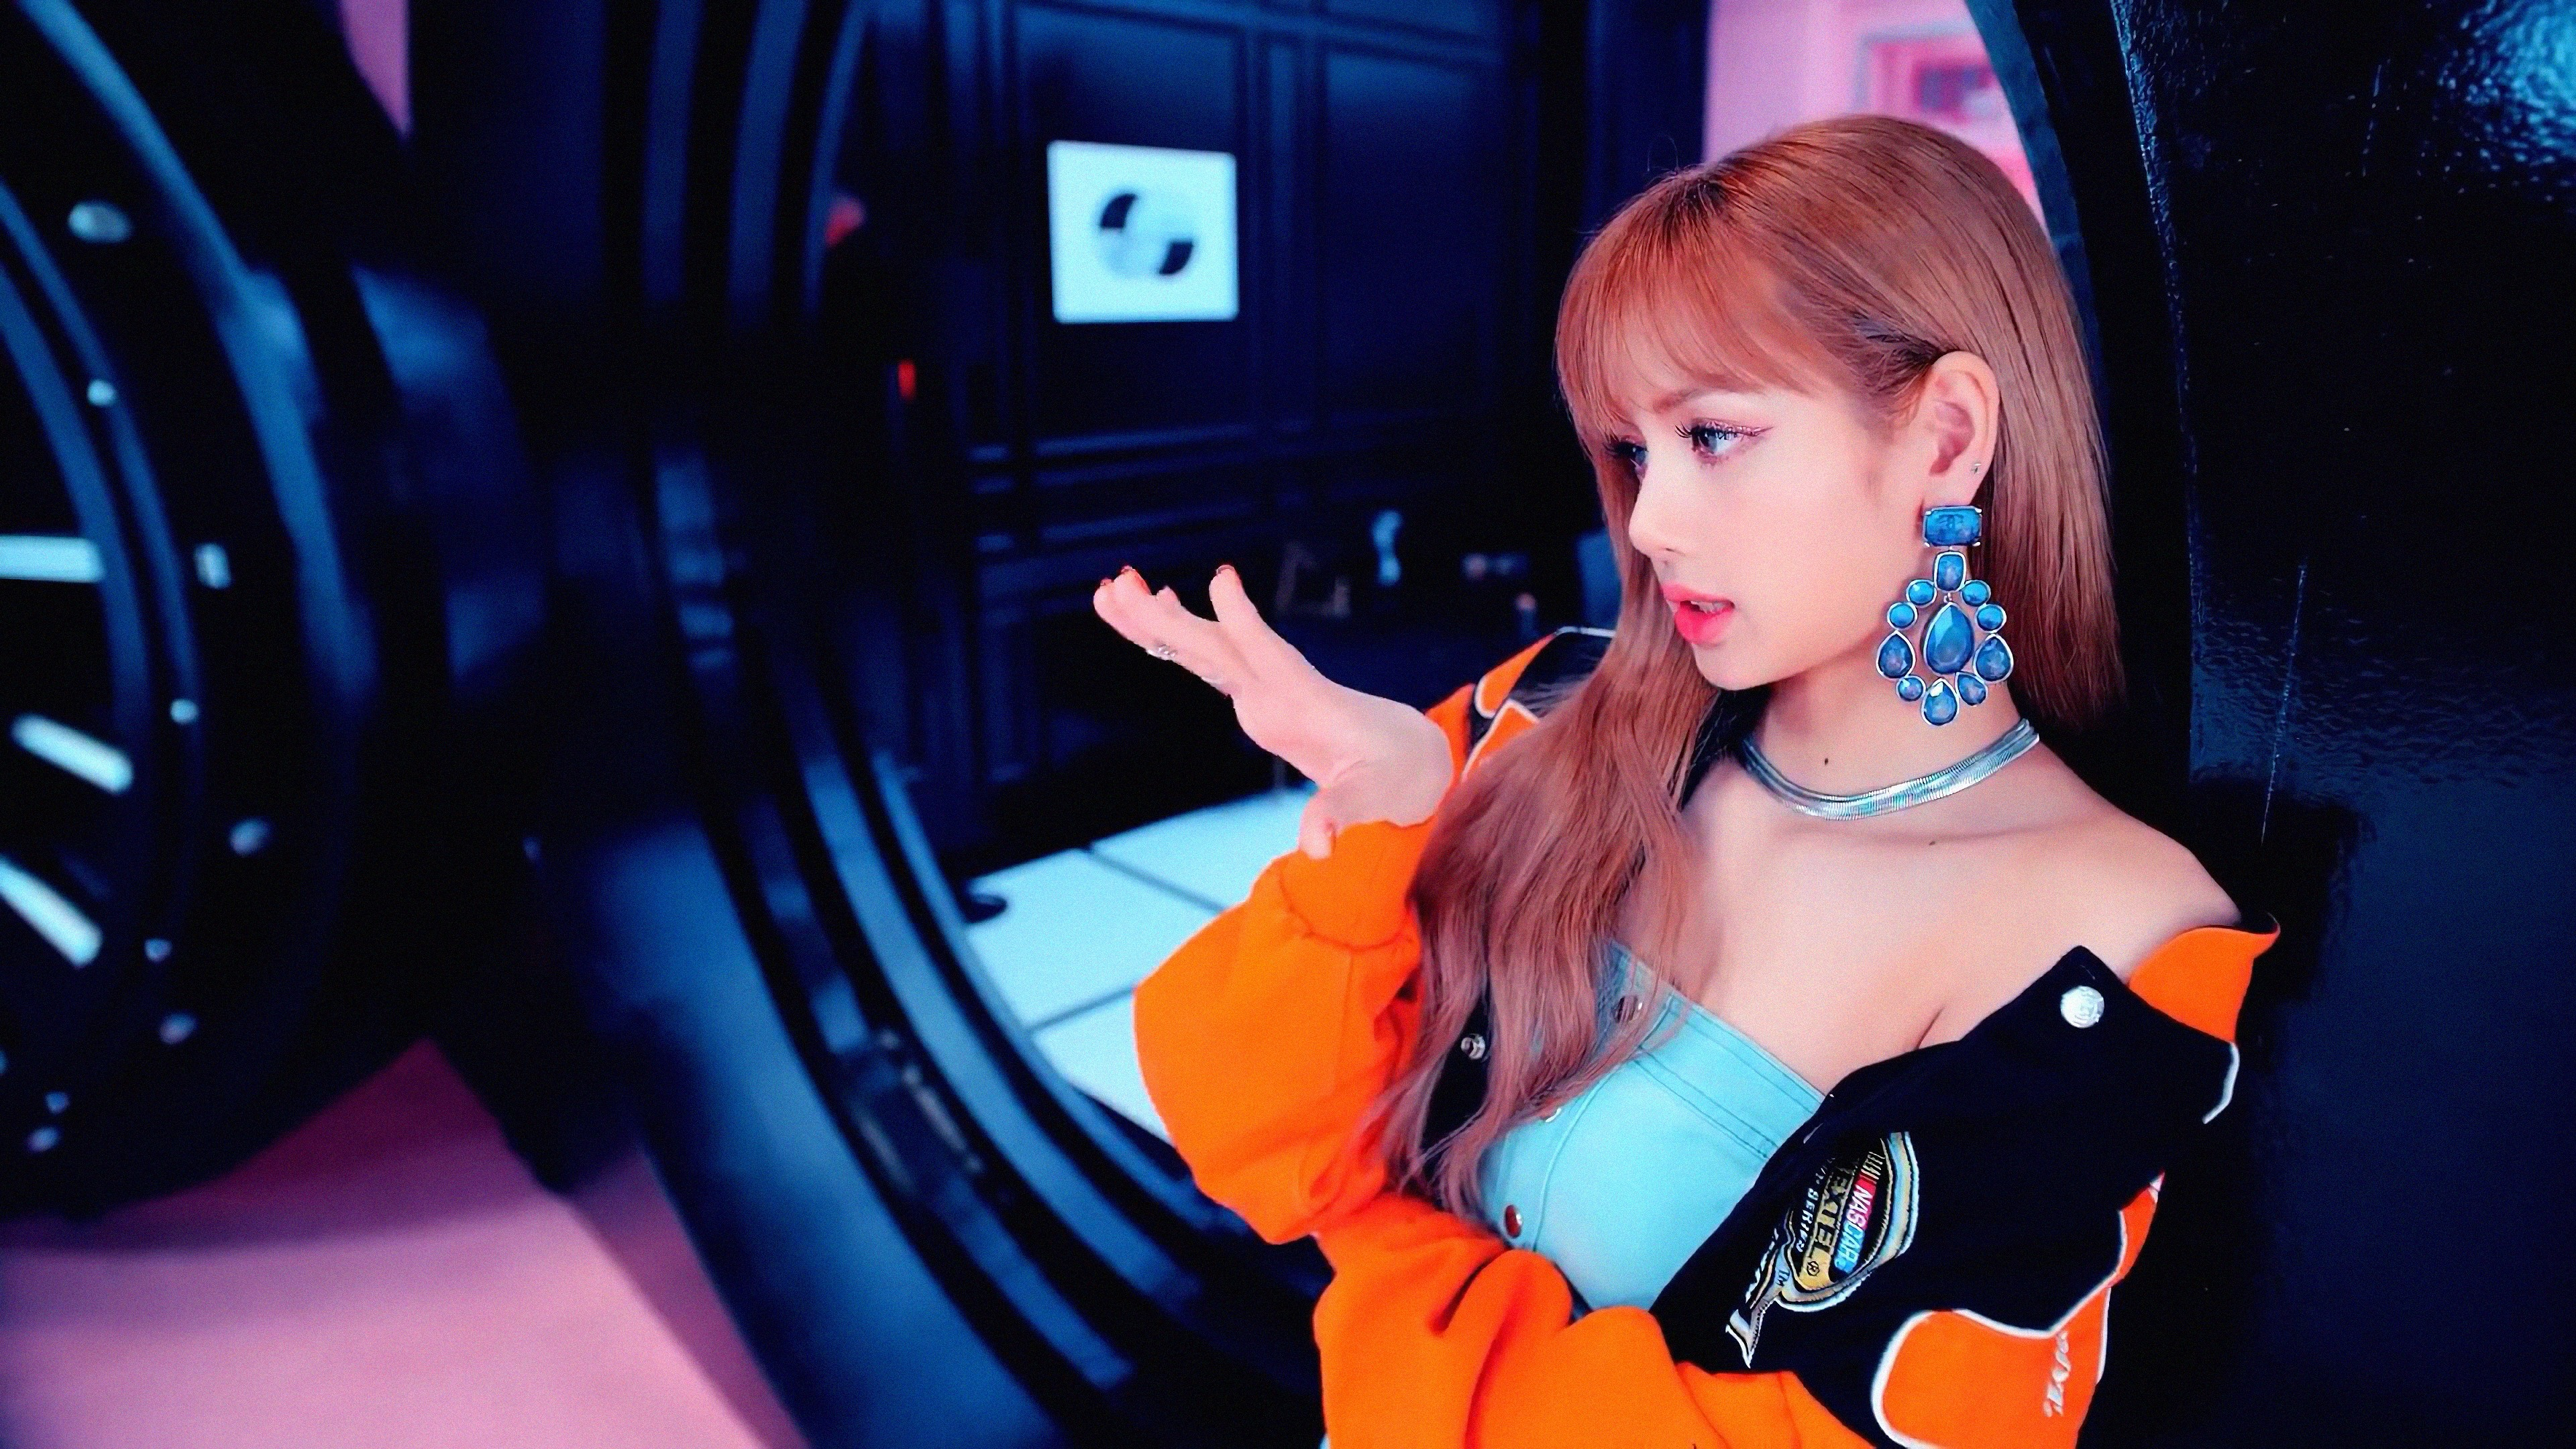 Lisa BLACKPINK images Lisa HD wallpaper and background photos 3840x2160